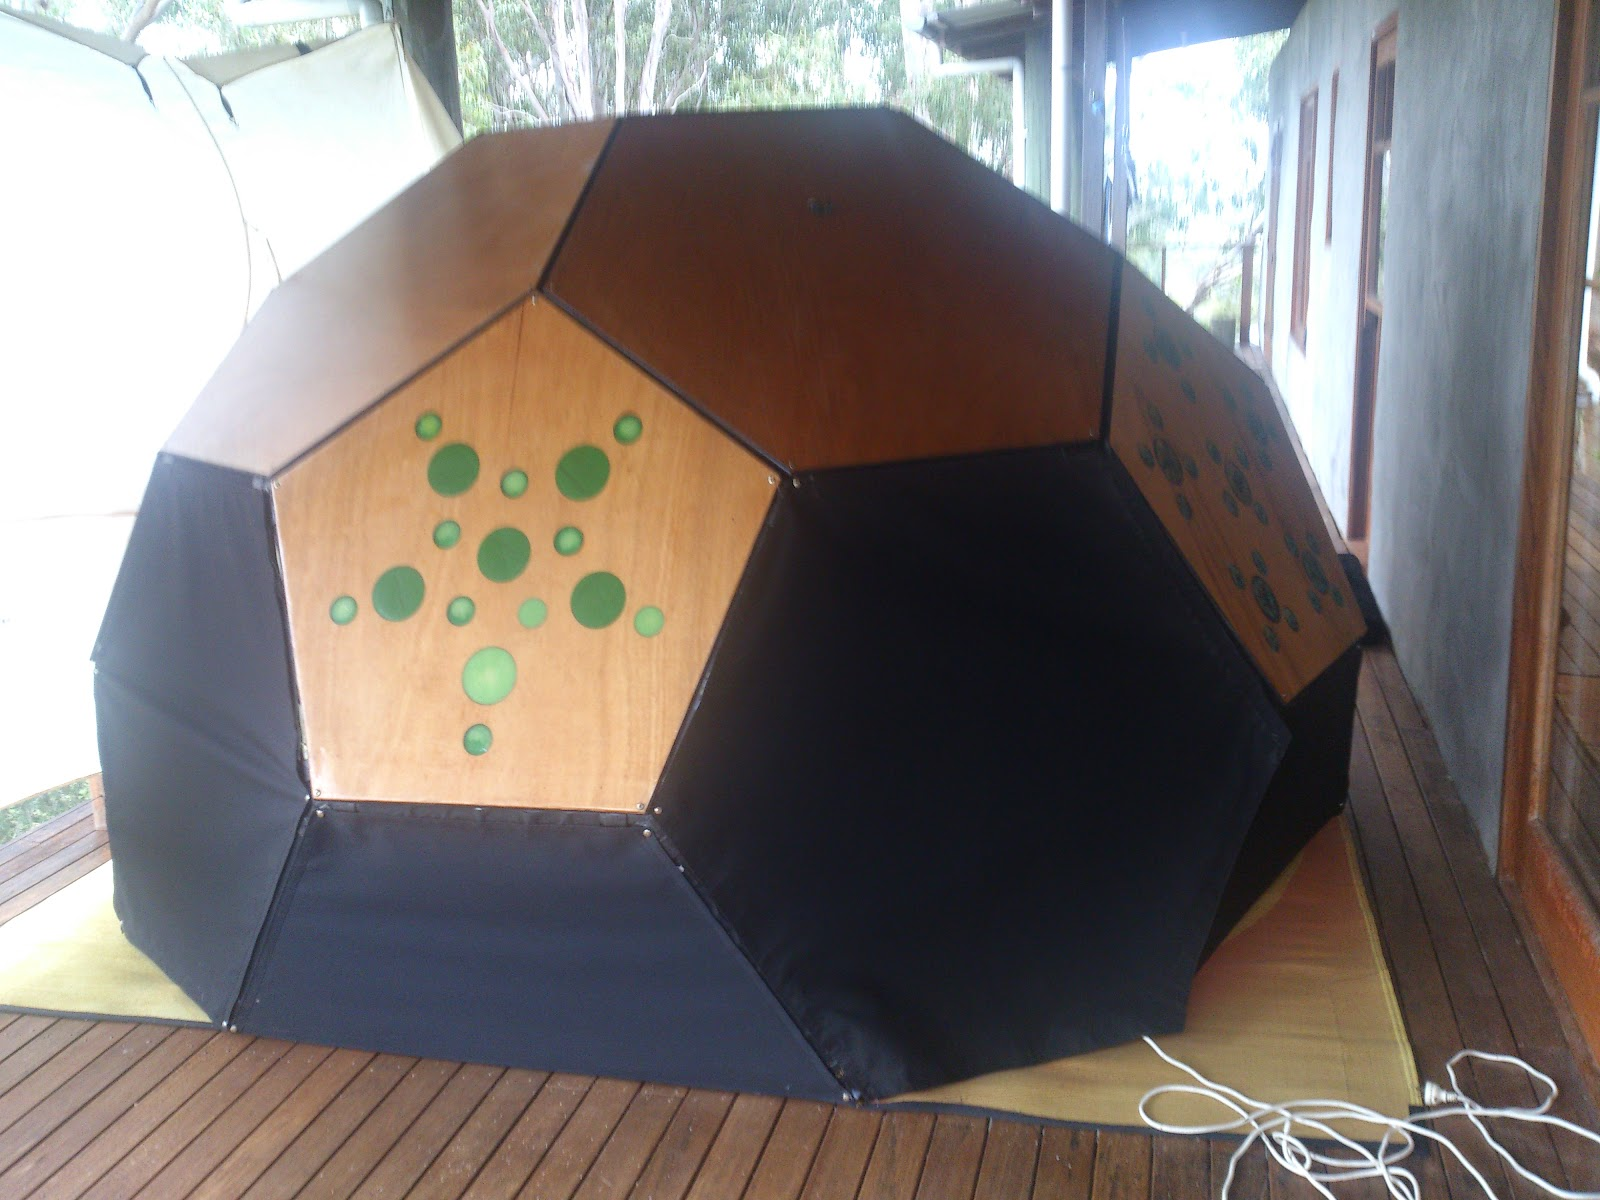 Colour therapy for relaxation - Soularis Domes Are A Powerful Combination Of Colour Therapy And Sacred Geodesic Dome Geometry This Union Of Colour And Form Creates A Space Of Relaxation